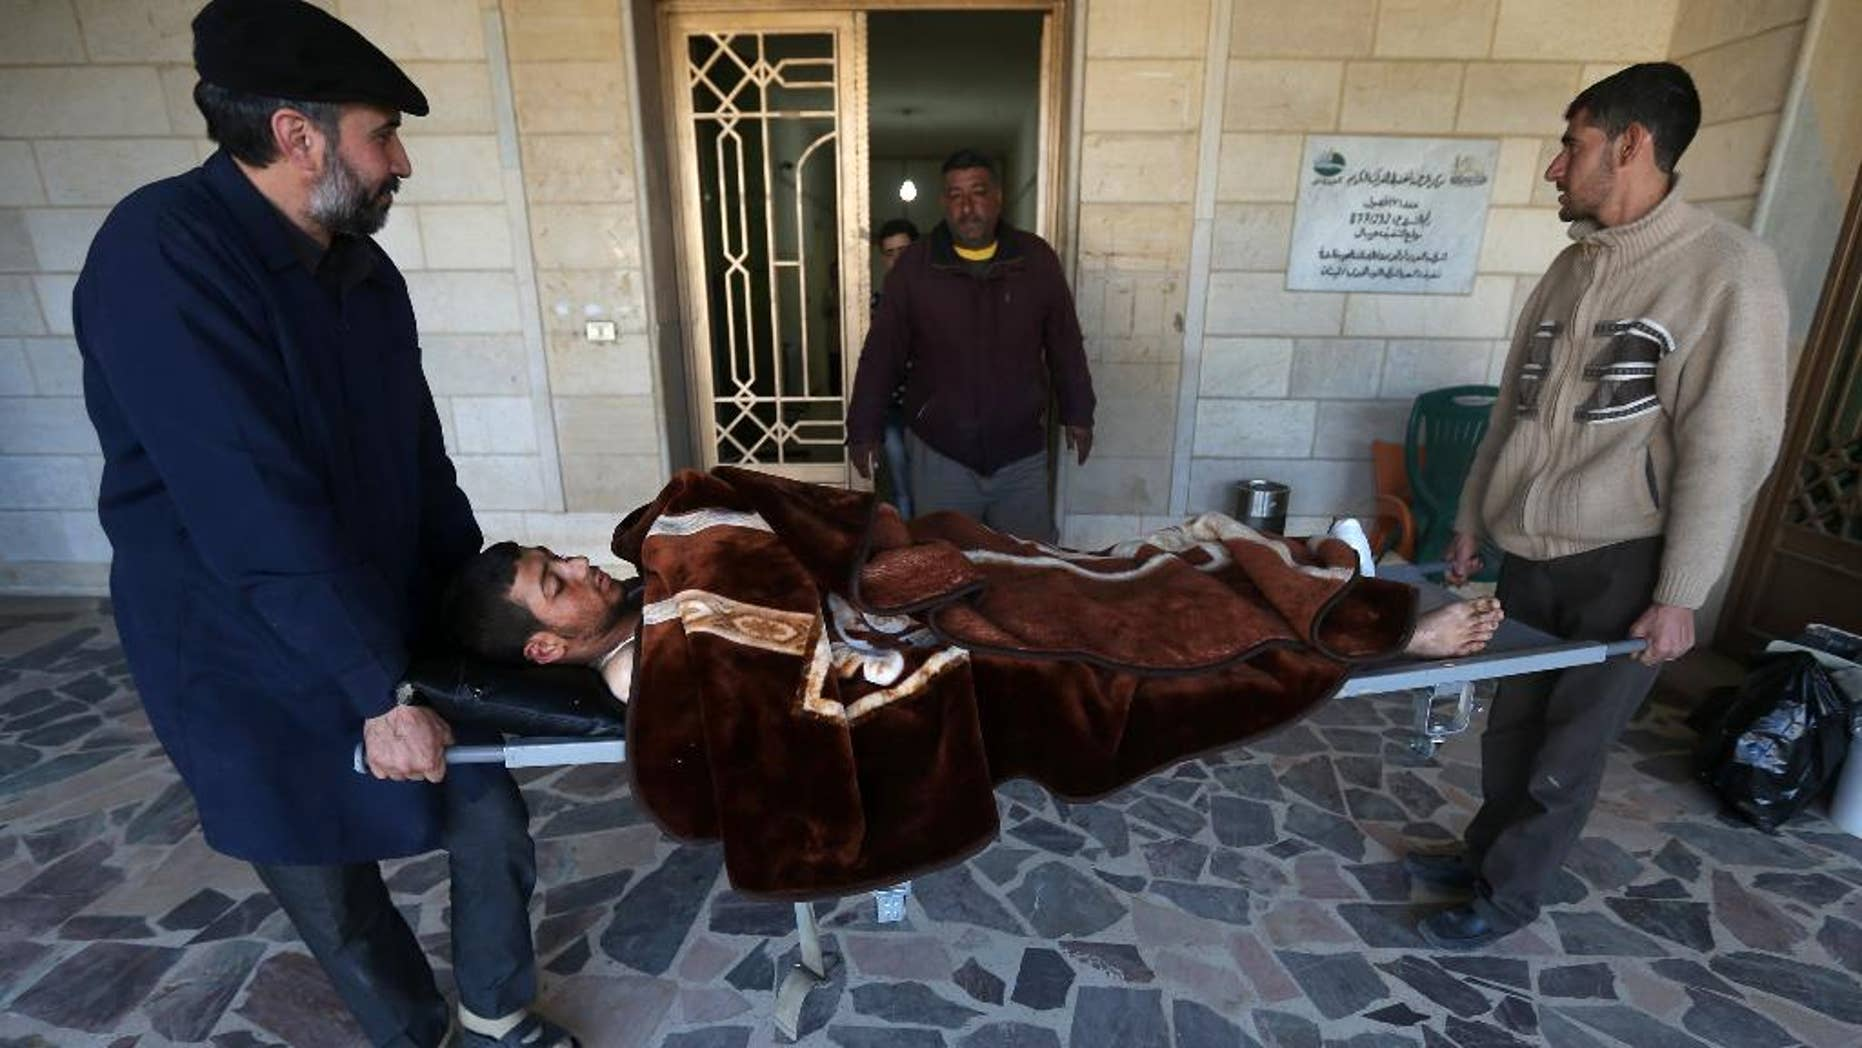 In this picture taken on Wednesday, March 5, 2014, a Lebanese nurse, left, and Syrian man, right, carry Adul-Karim, 18, a Syrian rebel who was injured during a battle against the Syrian government forces and Hezbollah fighters in Rima village near Yabroud, the last rebel stronghold in Syria's mountainous Qalamoun region, as they move him from a makeshift hospital to a rest house after he received his medical treatment, in the Lebanese-Syrian border town of Arsal, eastern Lebanon. Trucks of armed fighters rumble from this Lebanese Sunni town through the mountains to the front in Syria, where rebels are in a furious fight to keep a vital stronghold. At the same time, Lebanese Shiite fighters from a town not far away are also streaming in to join the battle _ but on the opposing side, backing Syrian government forces. The battle has effectively erased the border between the two countries and underlines how dangerously Lebanon is being sucked into its neighbor's civil war. (AP Photo/Hussein Malla)